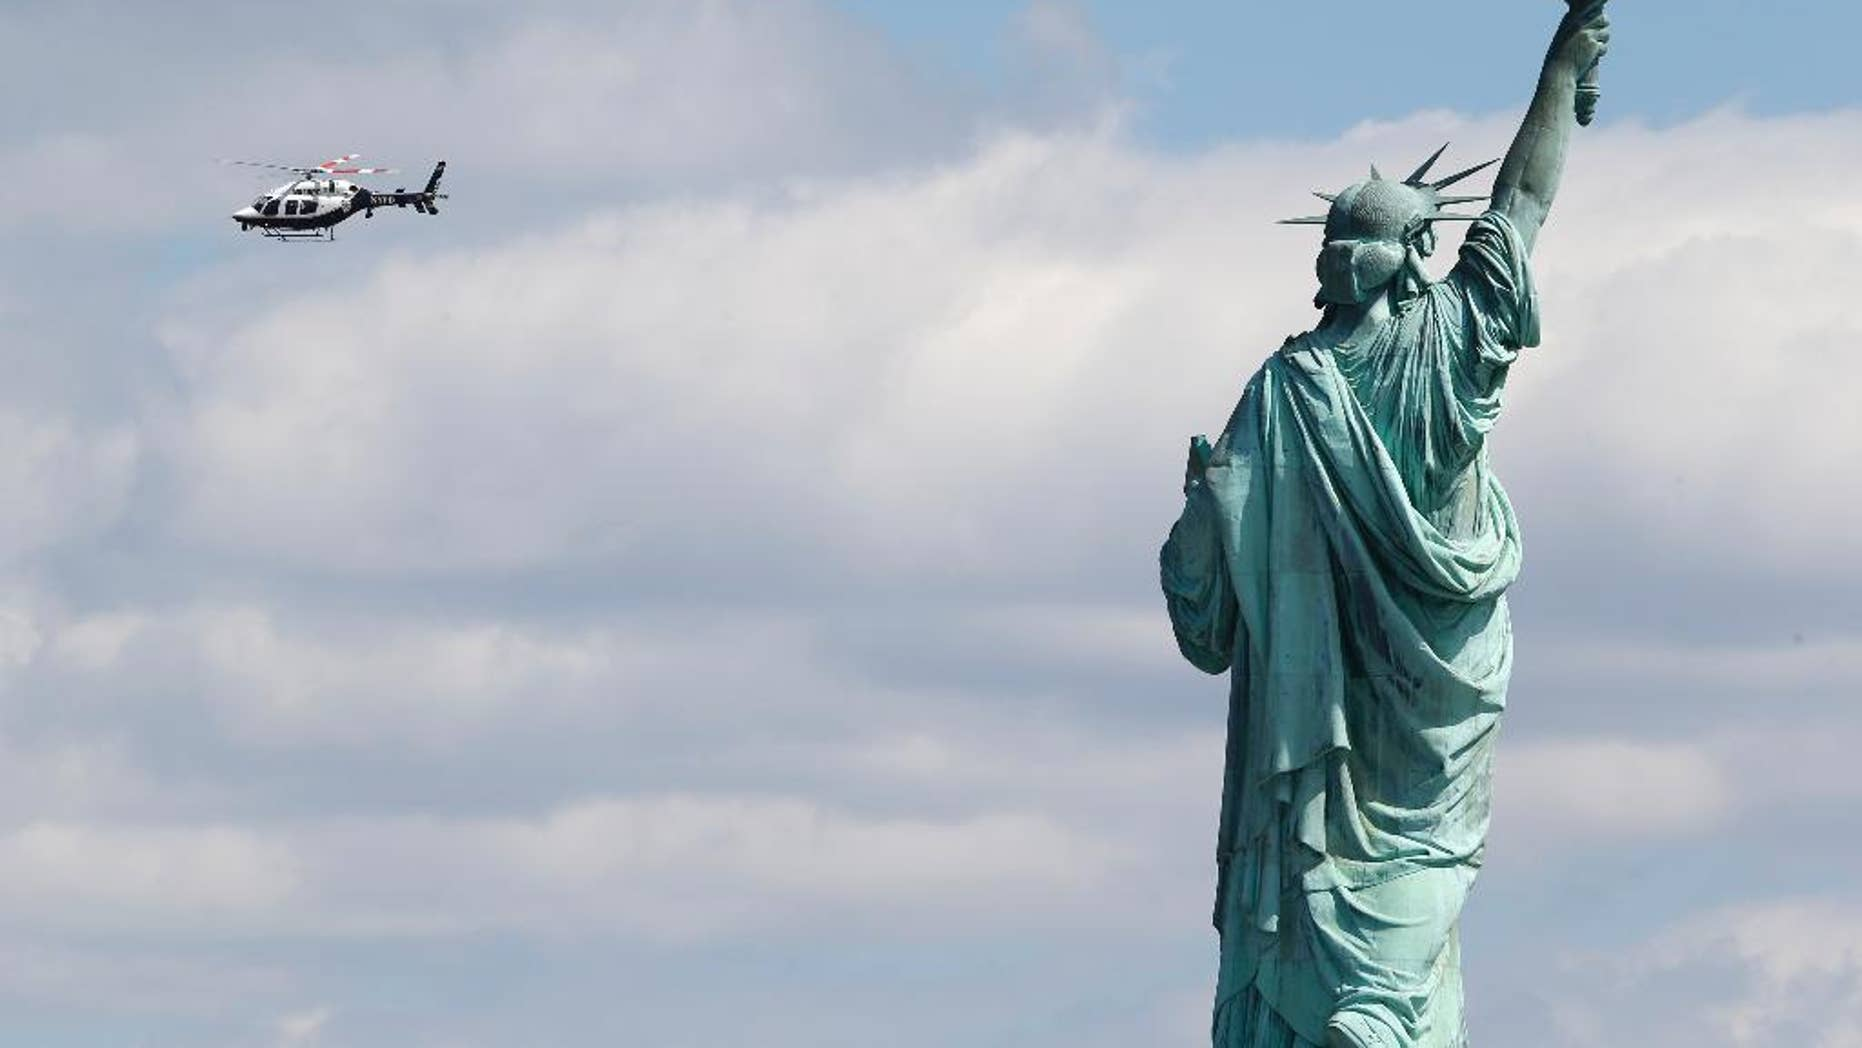 A New York Police helicopter circles over  Liberty Island where the Statue of Liberty was evacuated with officers responding to a report of a suspicious package seen from Jersey City, N.J., Friday, April 24, 2015. Visitors are posting photos online showing hundreds of people being herded toward a ferry landing. Tourists say they were taken off boats while trying to leave nearby Ellis Island. Those vessels then were used to evacuate Liberty Island. (AP Photo/Julio Cortez)